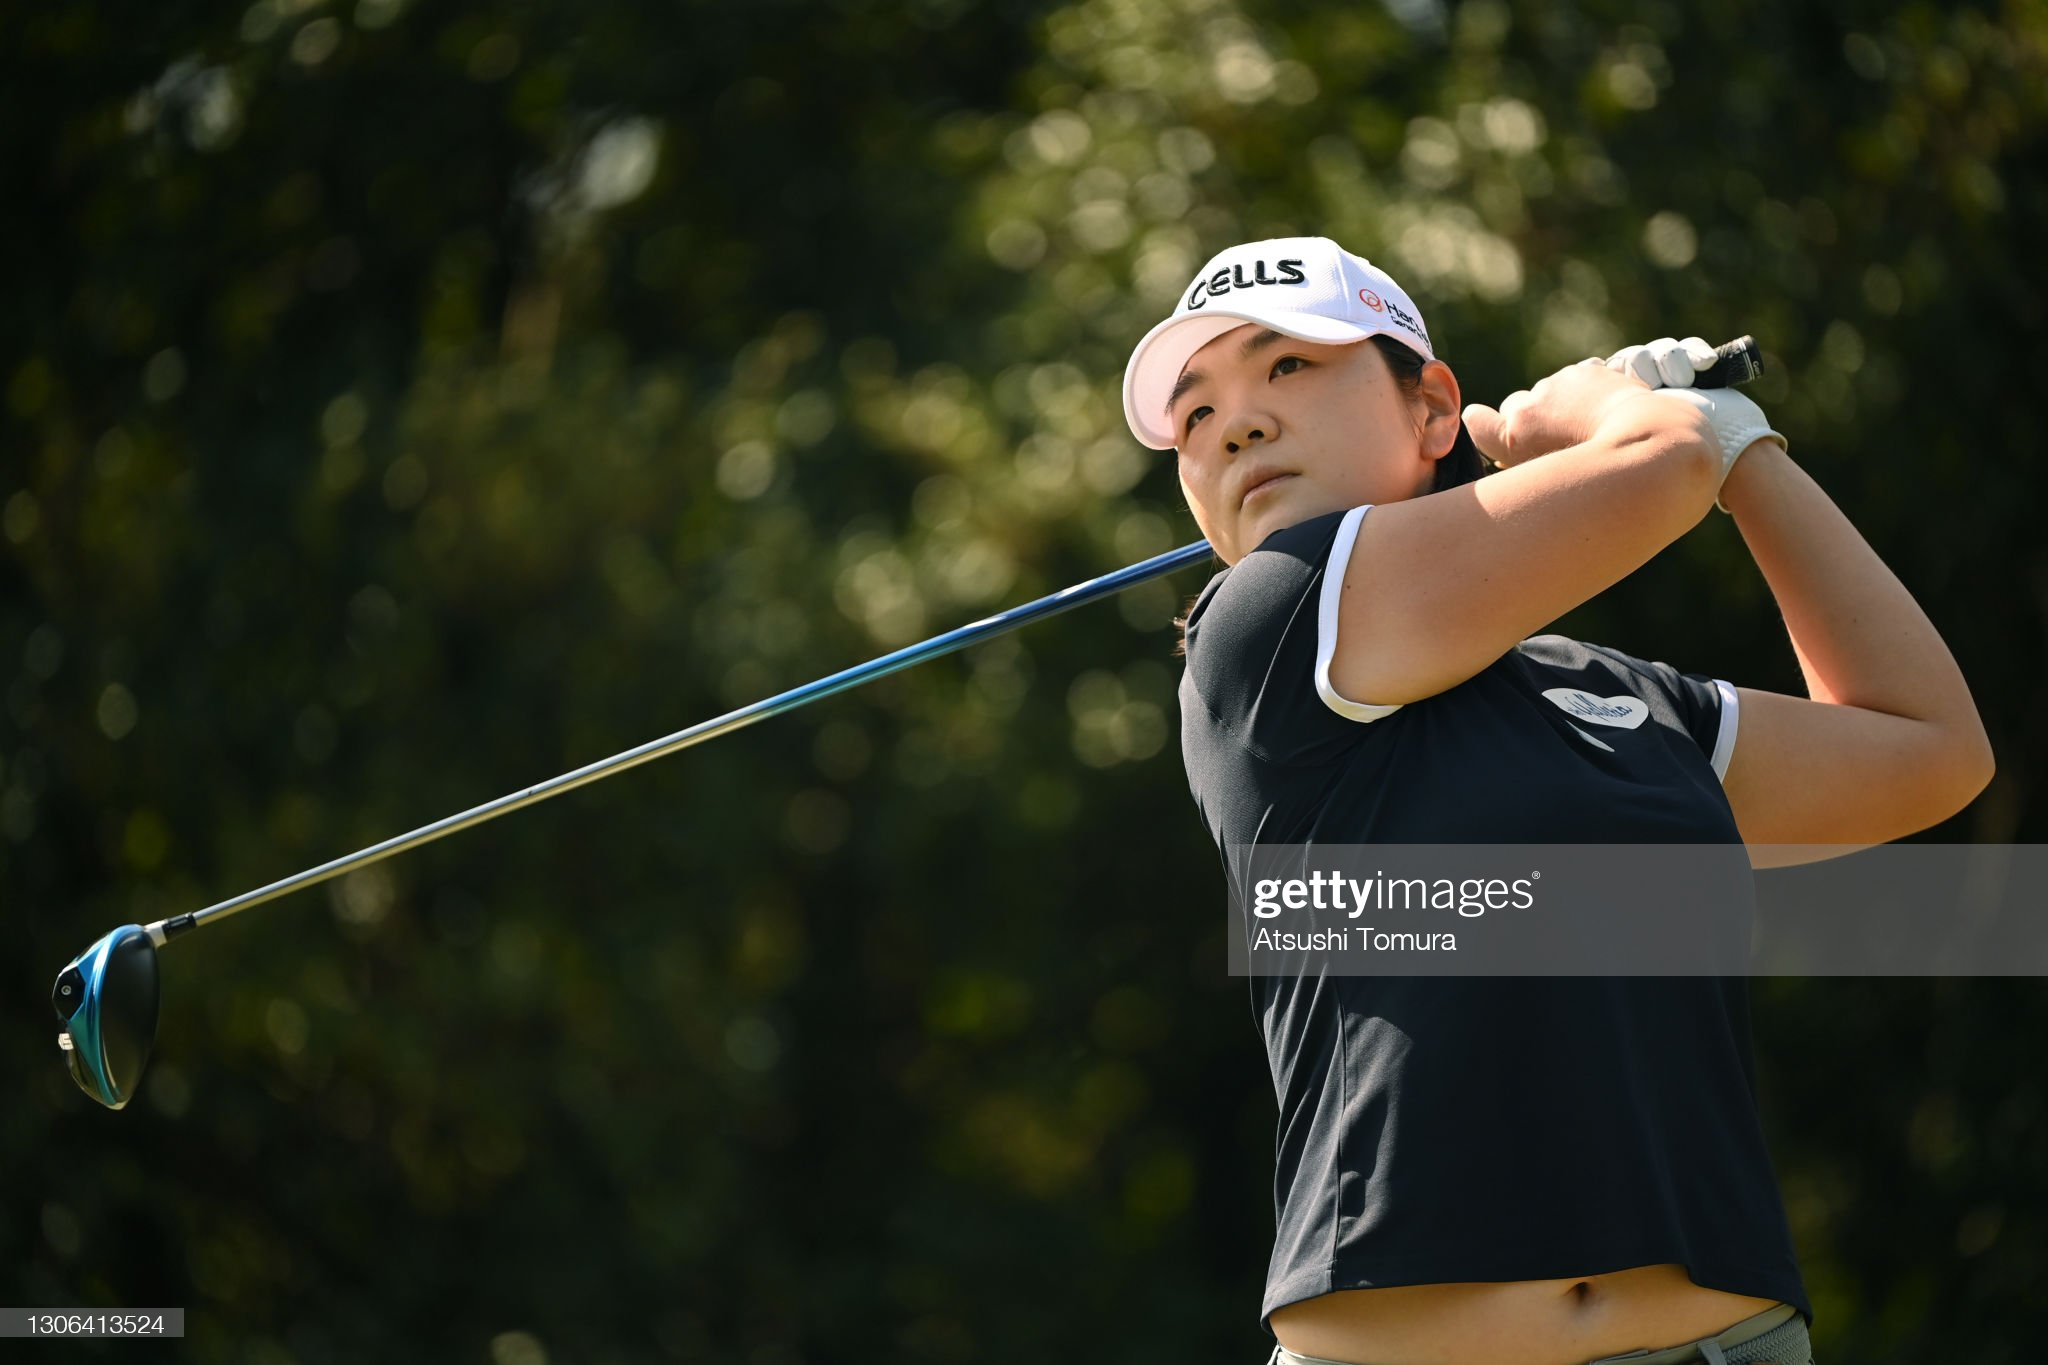 https://media.gettyimages.com/photos/minyoung-lee-of-south-korea-hits-her-tee-shot-on-the-11th-hole-during-picture-id1306413524?s=2048x2048